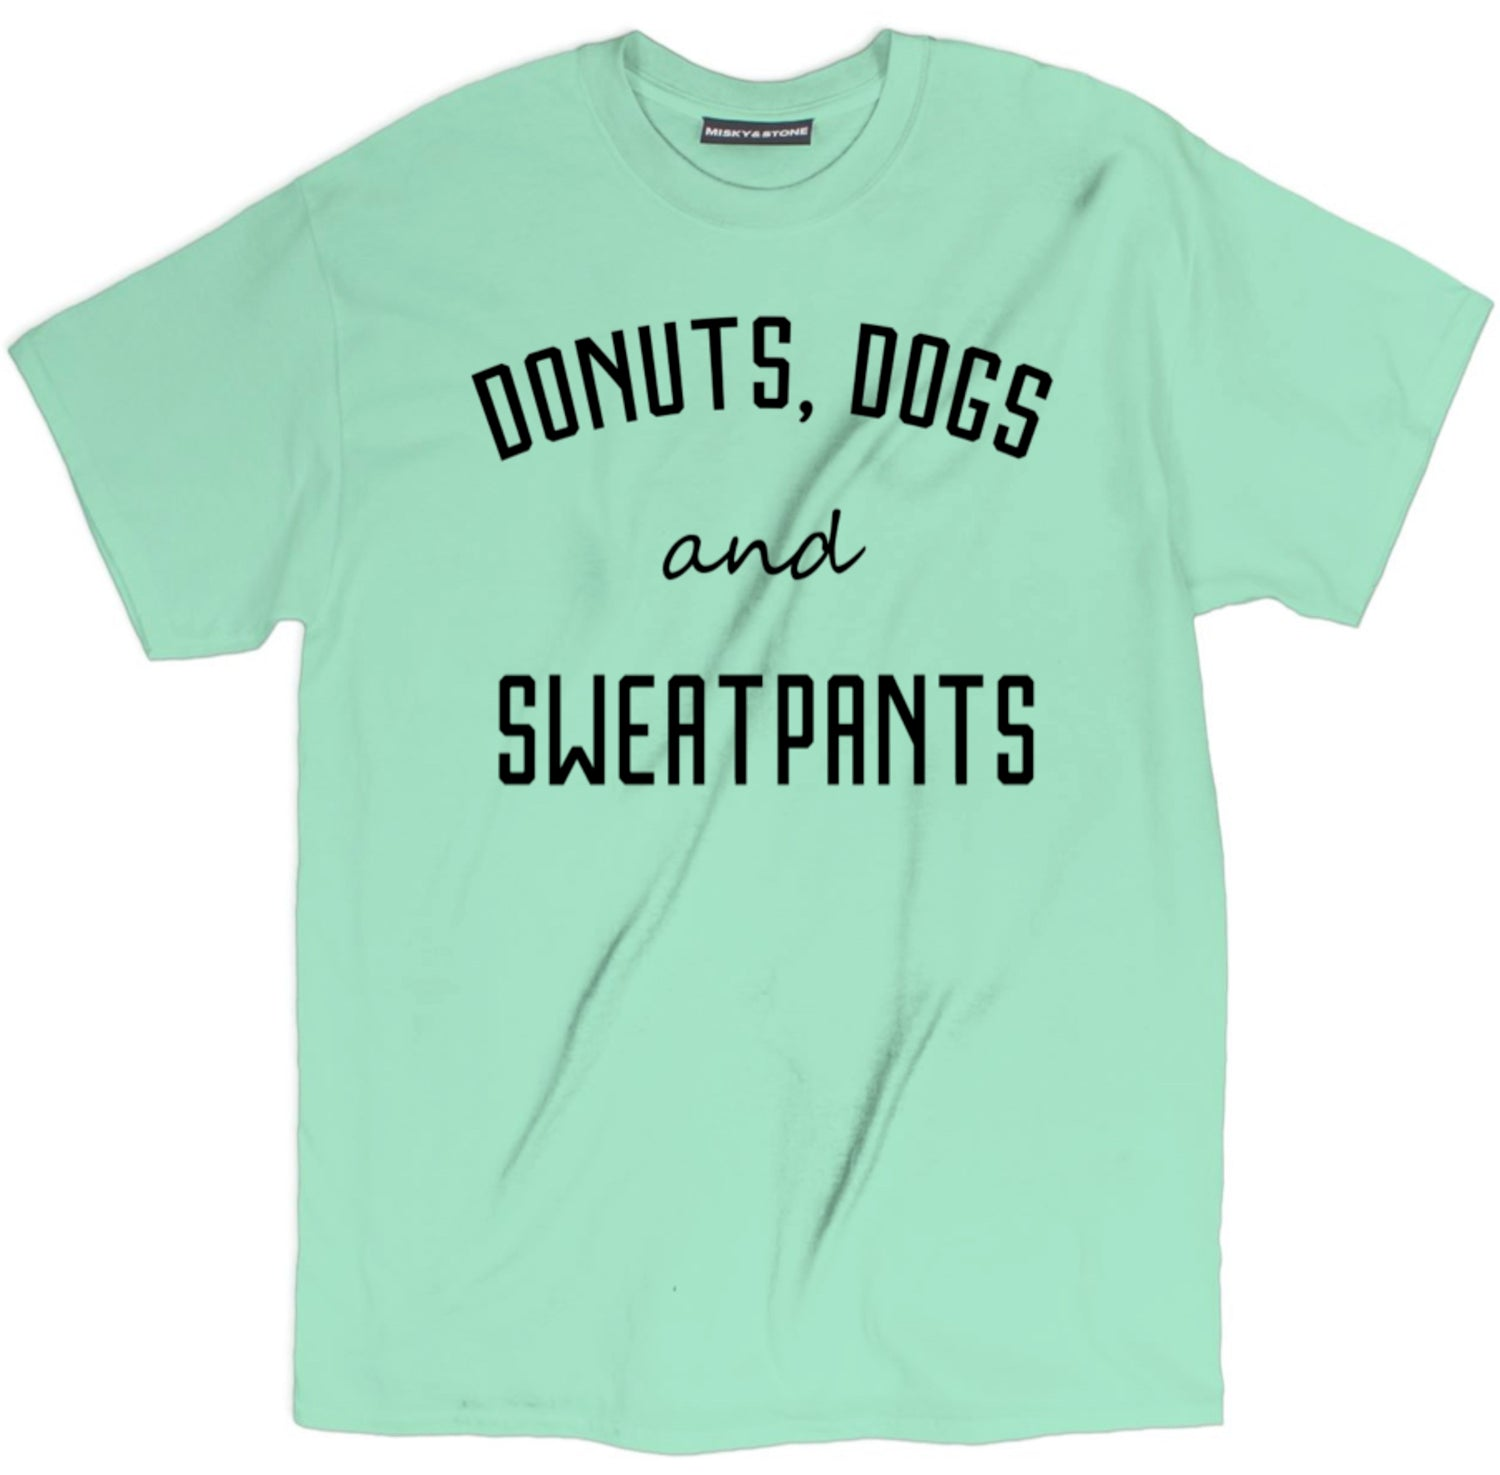 donut t shirt, donut shirt, of donut shirt, donut tee, donut tee shirt, i donut care shirt, donut apparel, funny donut shirts, donut top, donut workout shirt, donut worry be happy shirt, donut shirt, funny shirts with sayings,